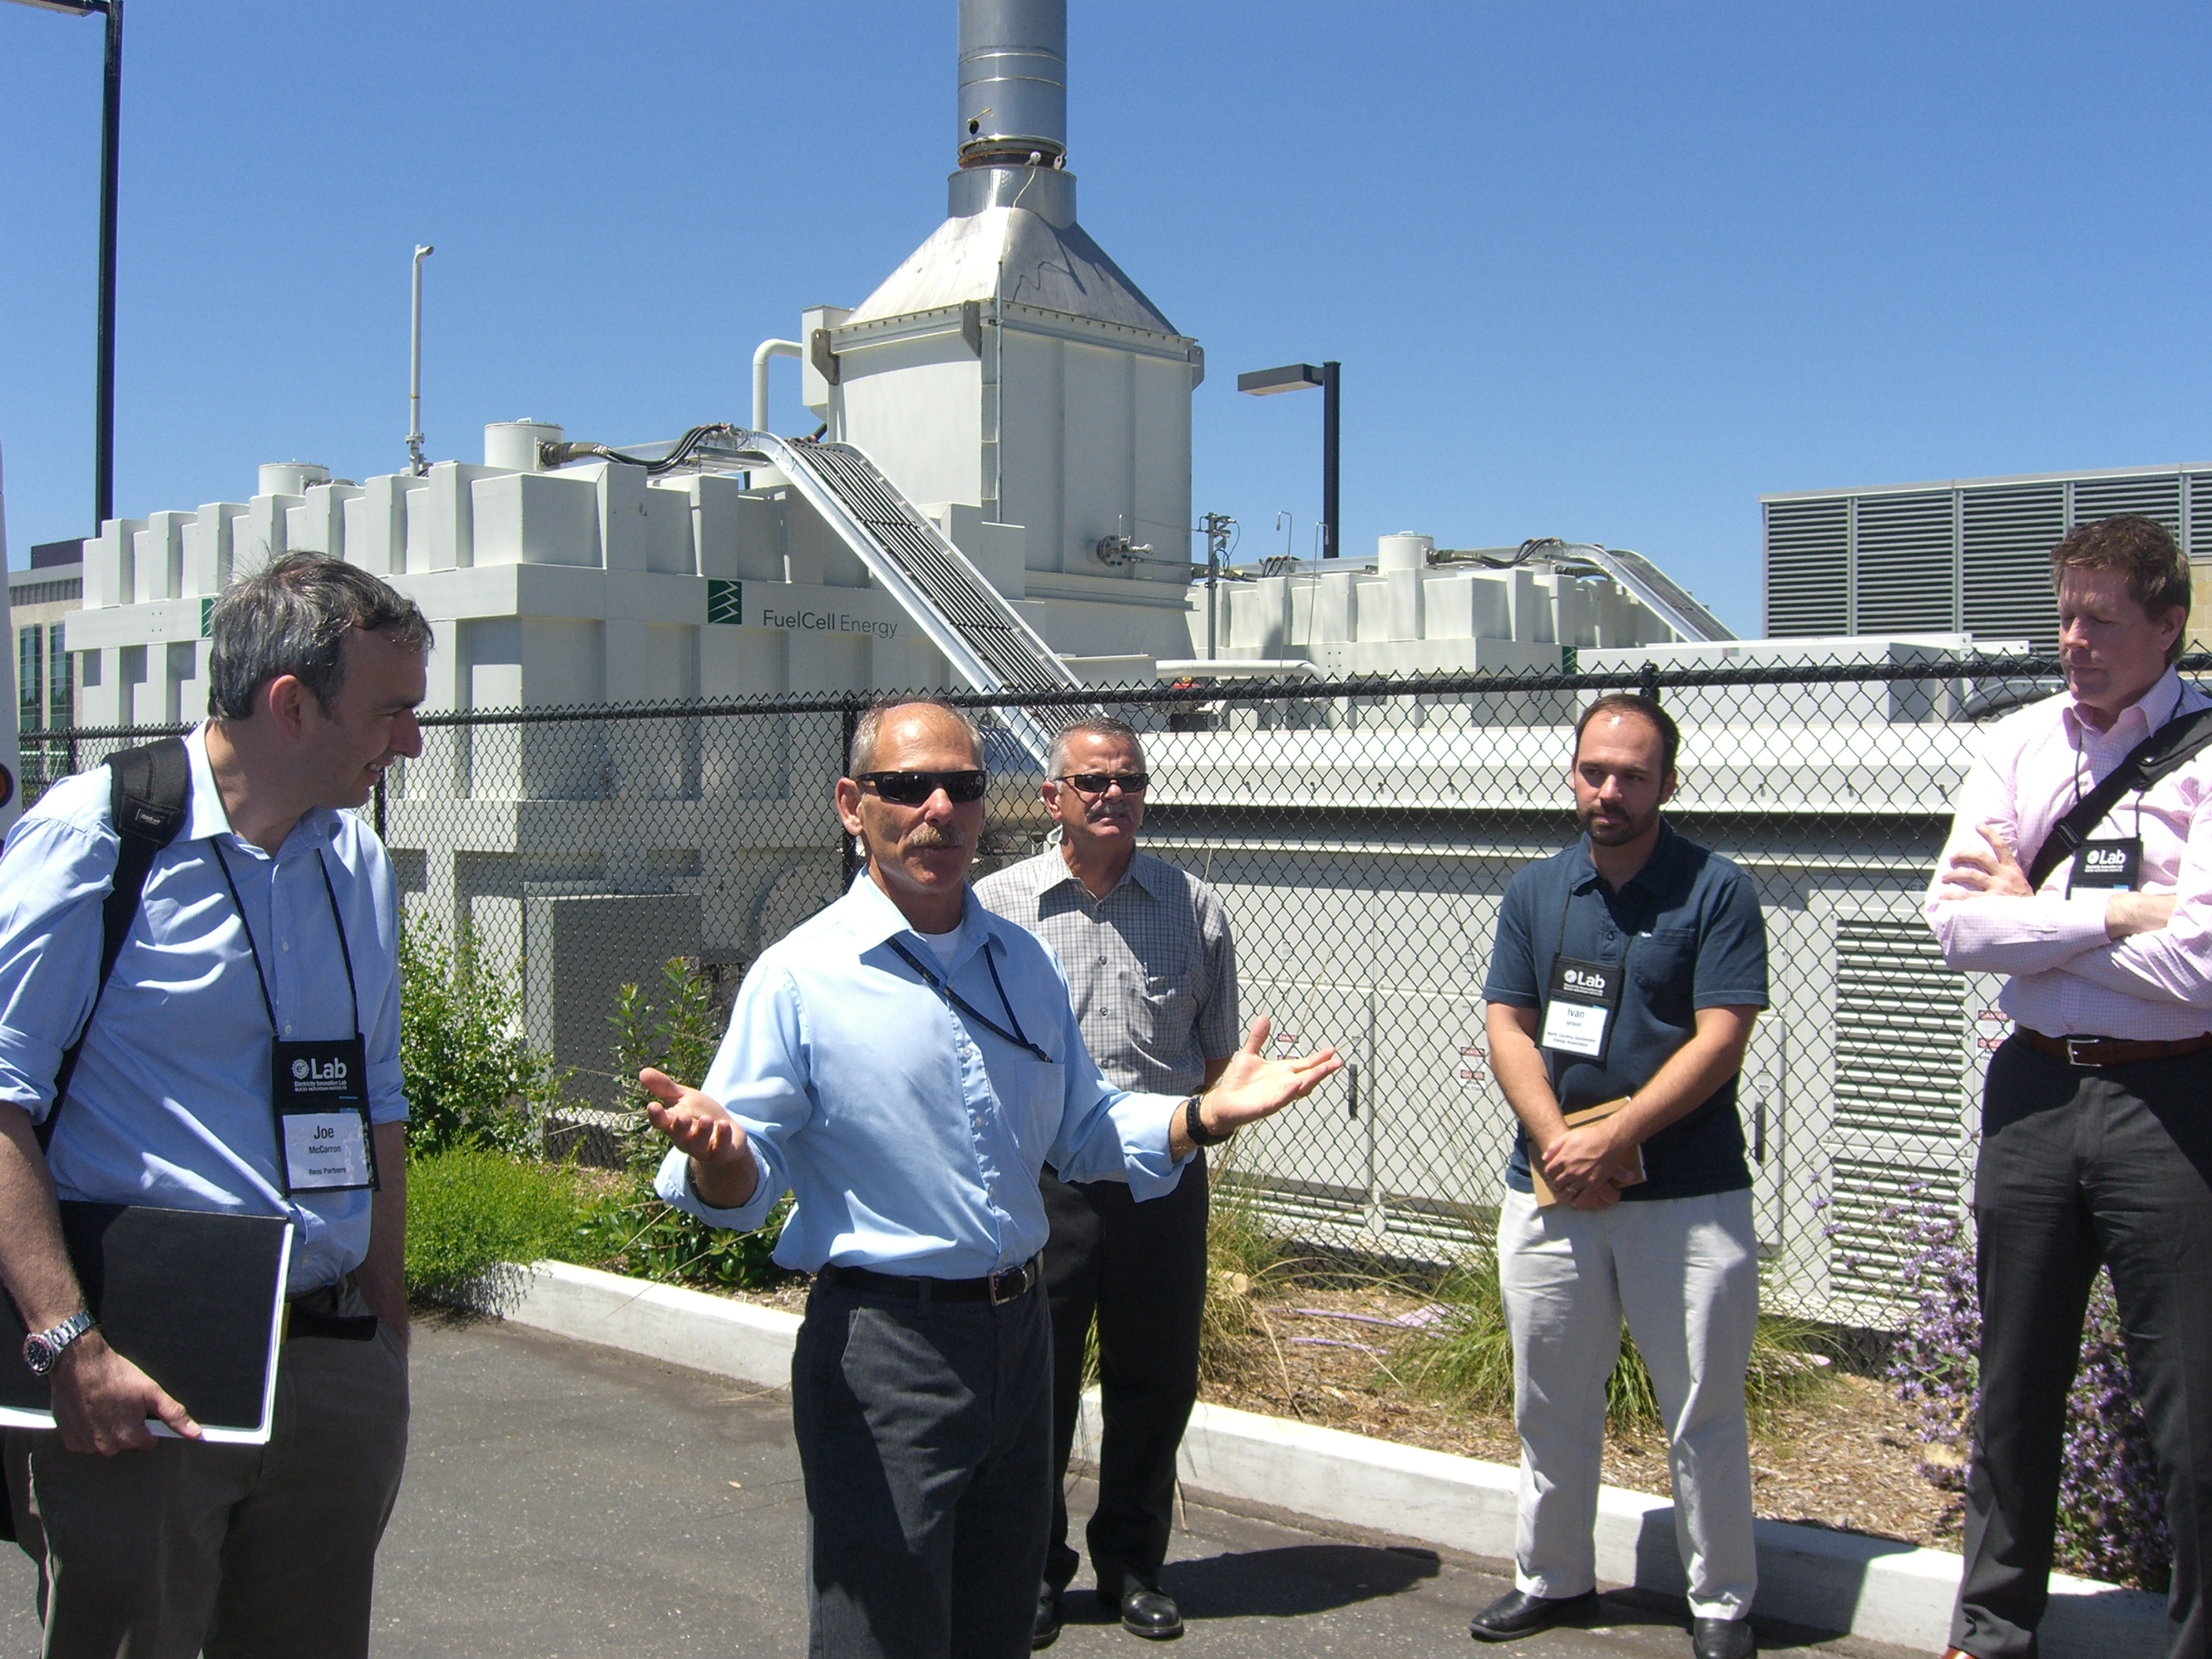 Dave Weil of University of California, San Diego shows eLab participants fuel cells that helped the campus keep the lights on during last year's major blackout in Southern California.